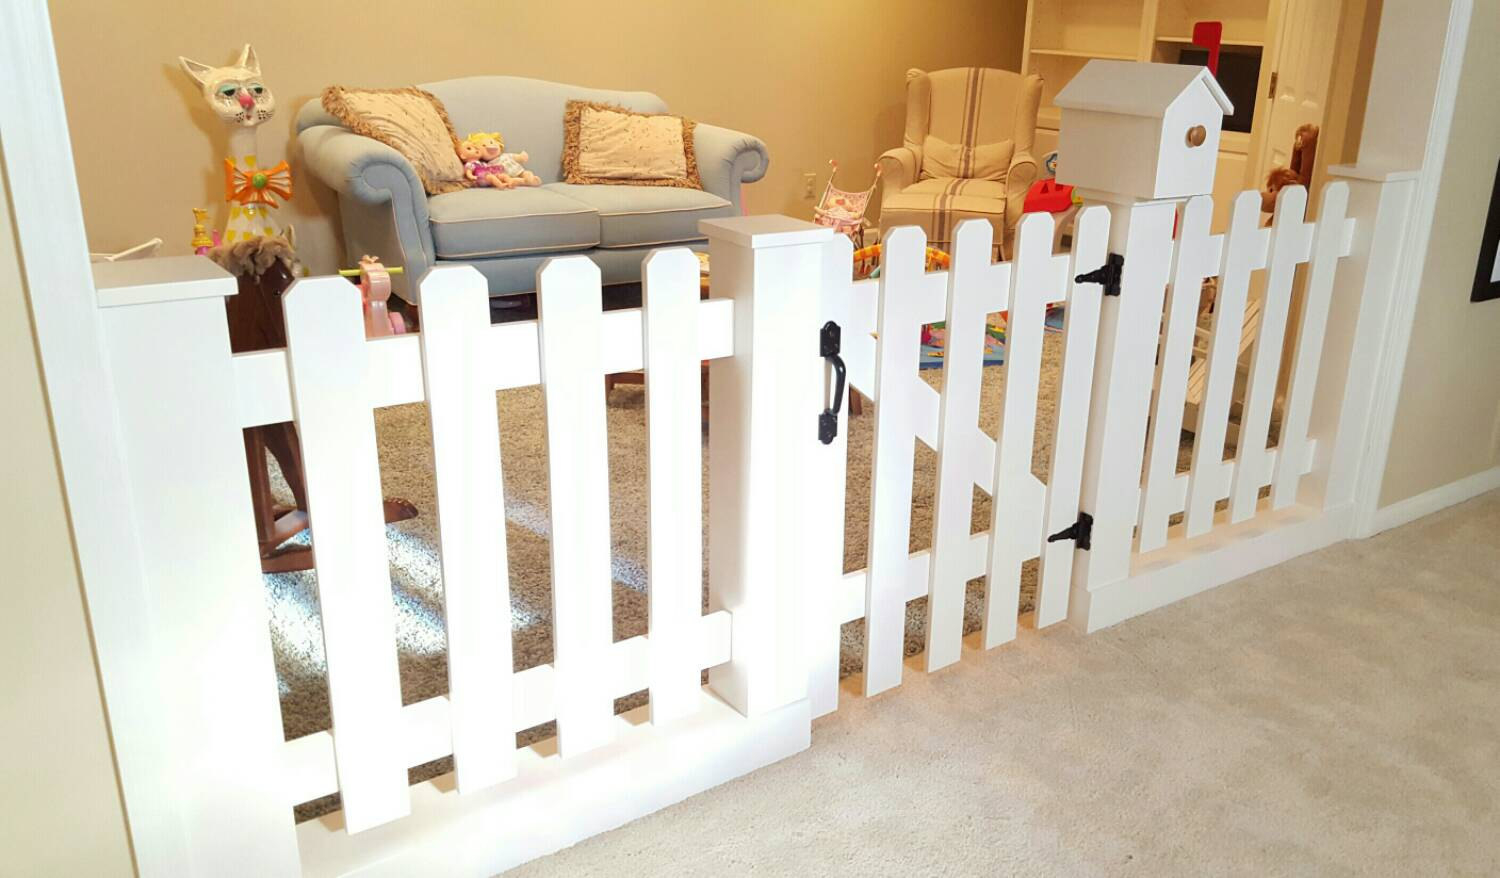 Building Ba Gate Fence Home Design Ideas throughout sizing 1500 X 878